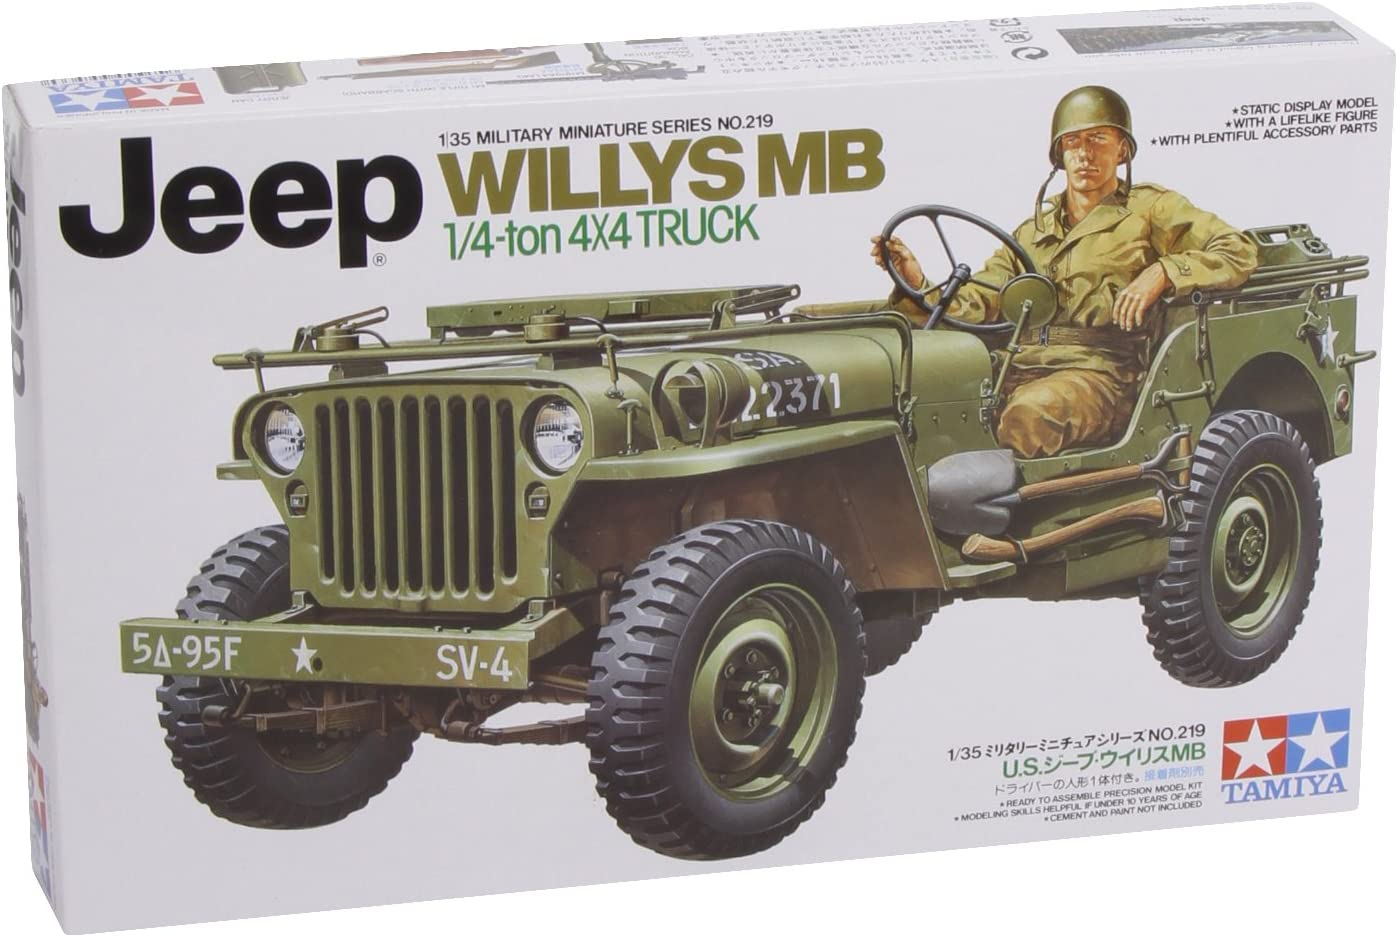 Amazon.com: Tamiya Jeep Willys 1/4 Ton 4X4 Hobby Model Kit: Toys ...